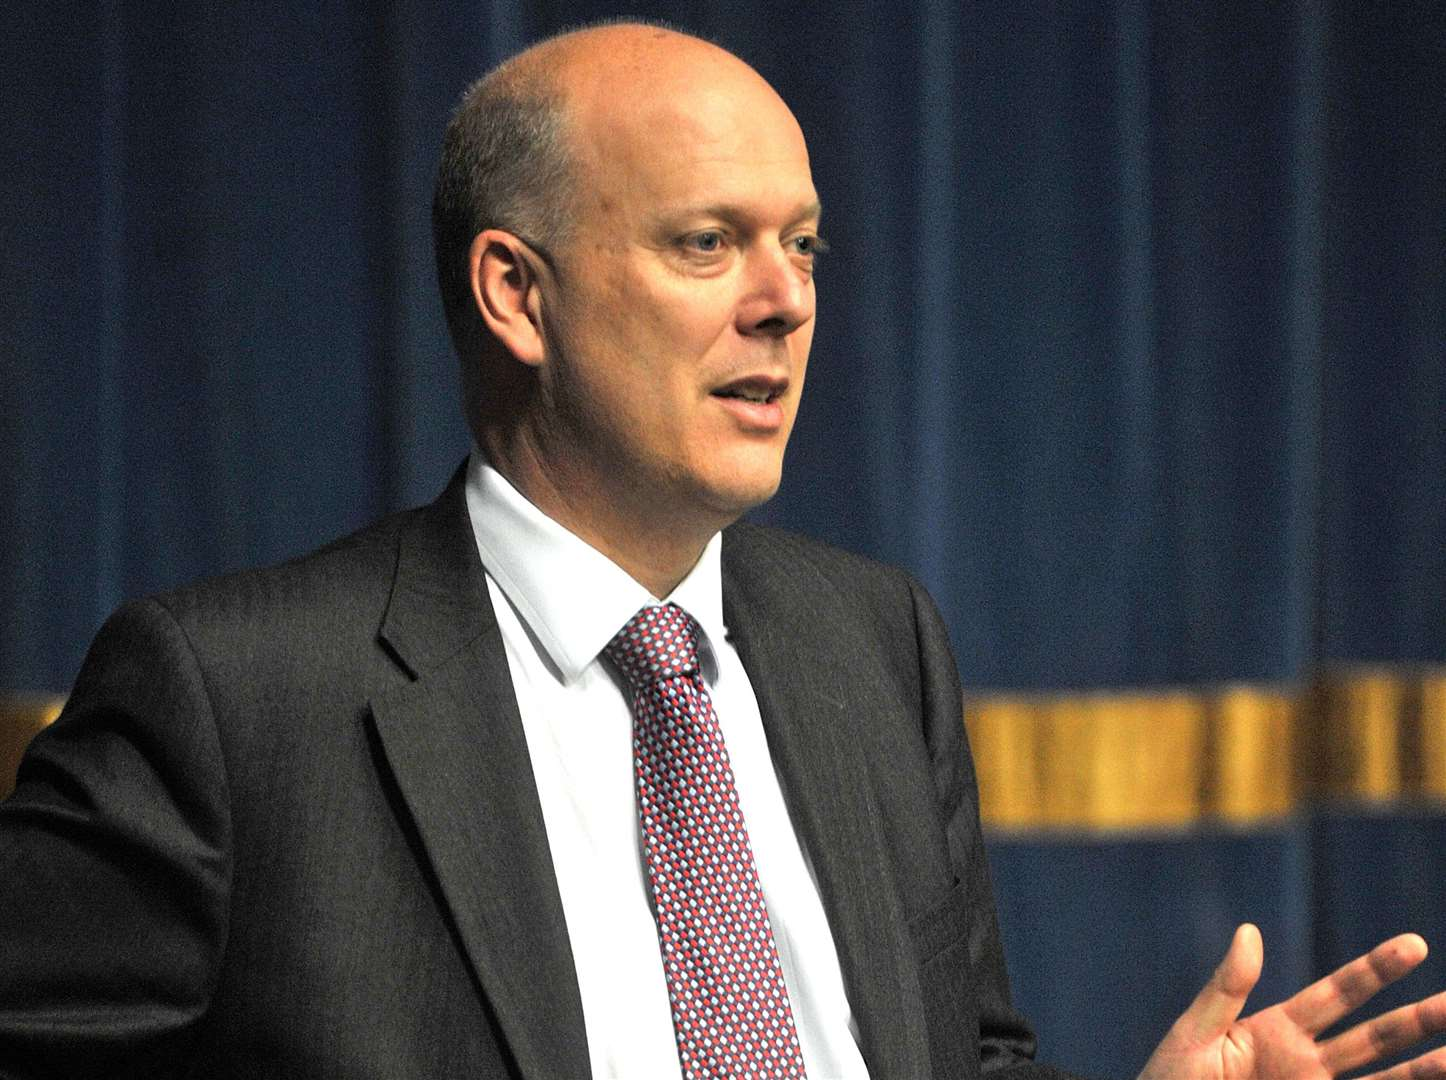 Transport Secretary Chris Grayling will be given more time for discussions in a bid to secure a new ferry route from Ramsgate to Ostend in Belgium